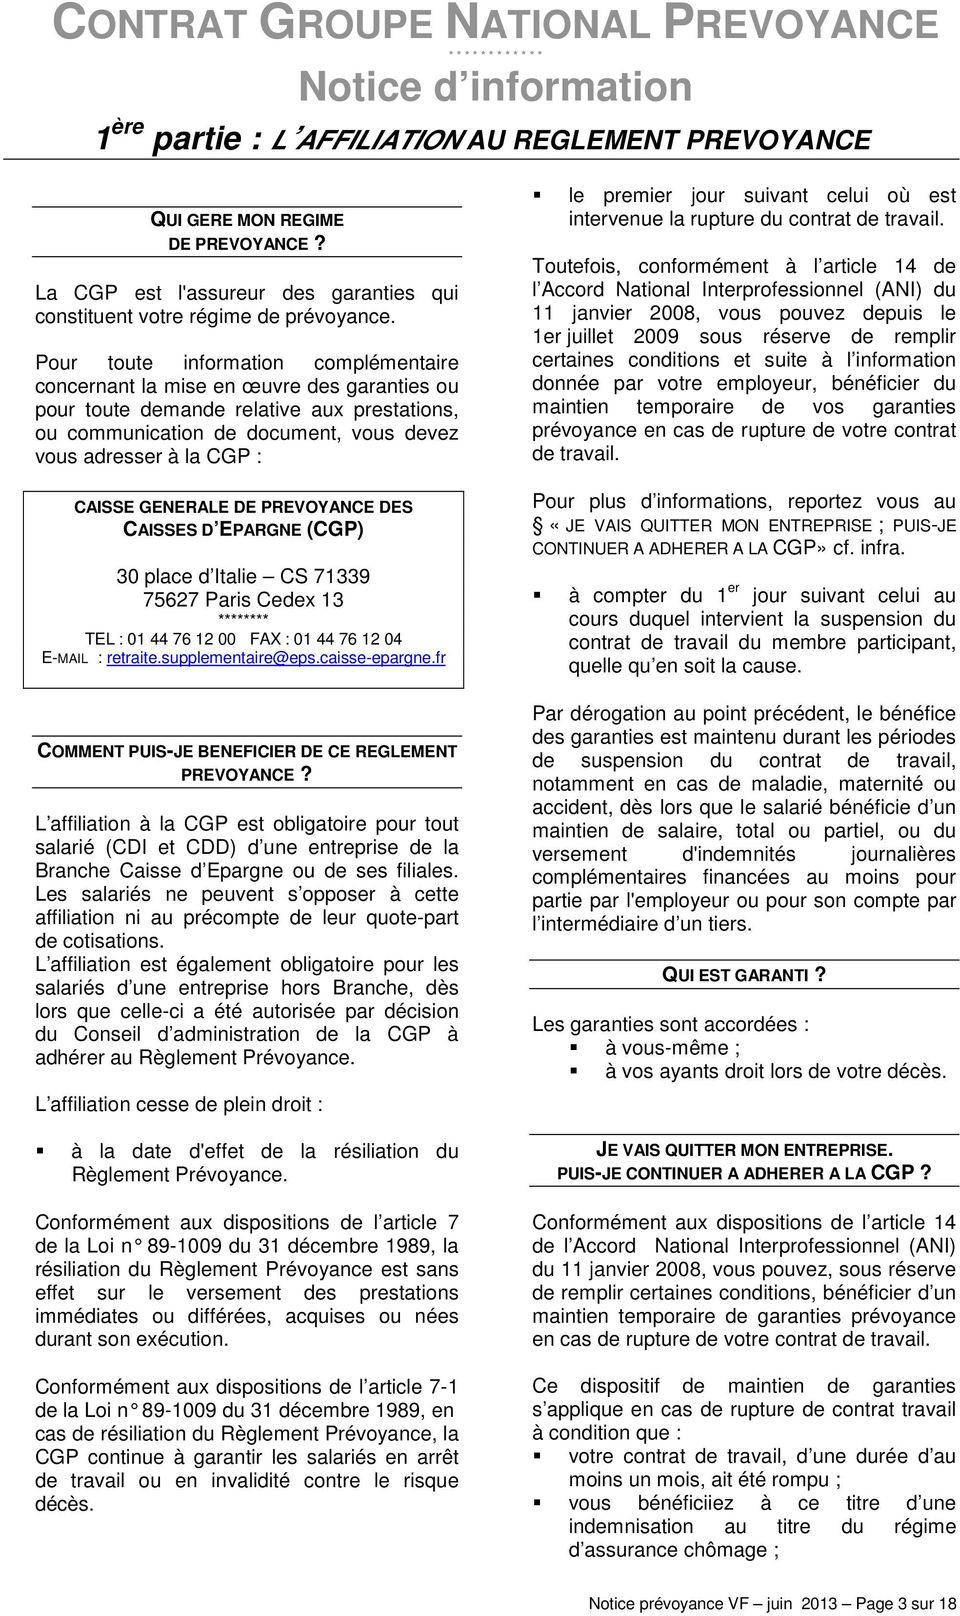 CAISSE GENERALE DE PREVOYANCE DES CAISSES D EPARGNE (CGP) 30 place d Italie CS 71339 75627 Paris Cedex 13 ******** TEL : 01 44 76 12 00 FAX : 01 44 76 12 04 E-MAIL : retraite.supplementaire@eps.